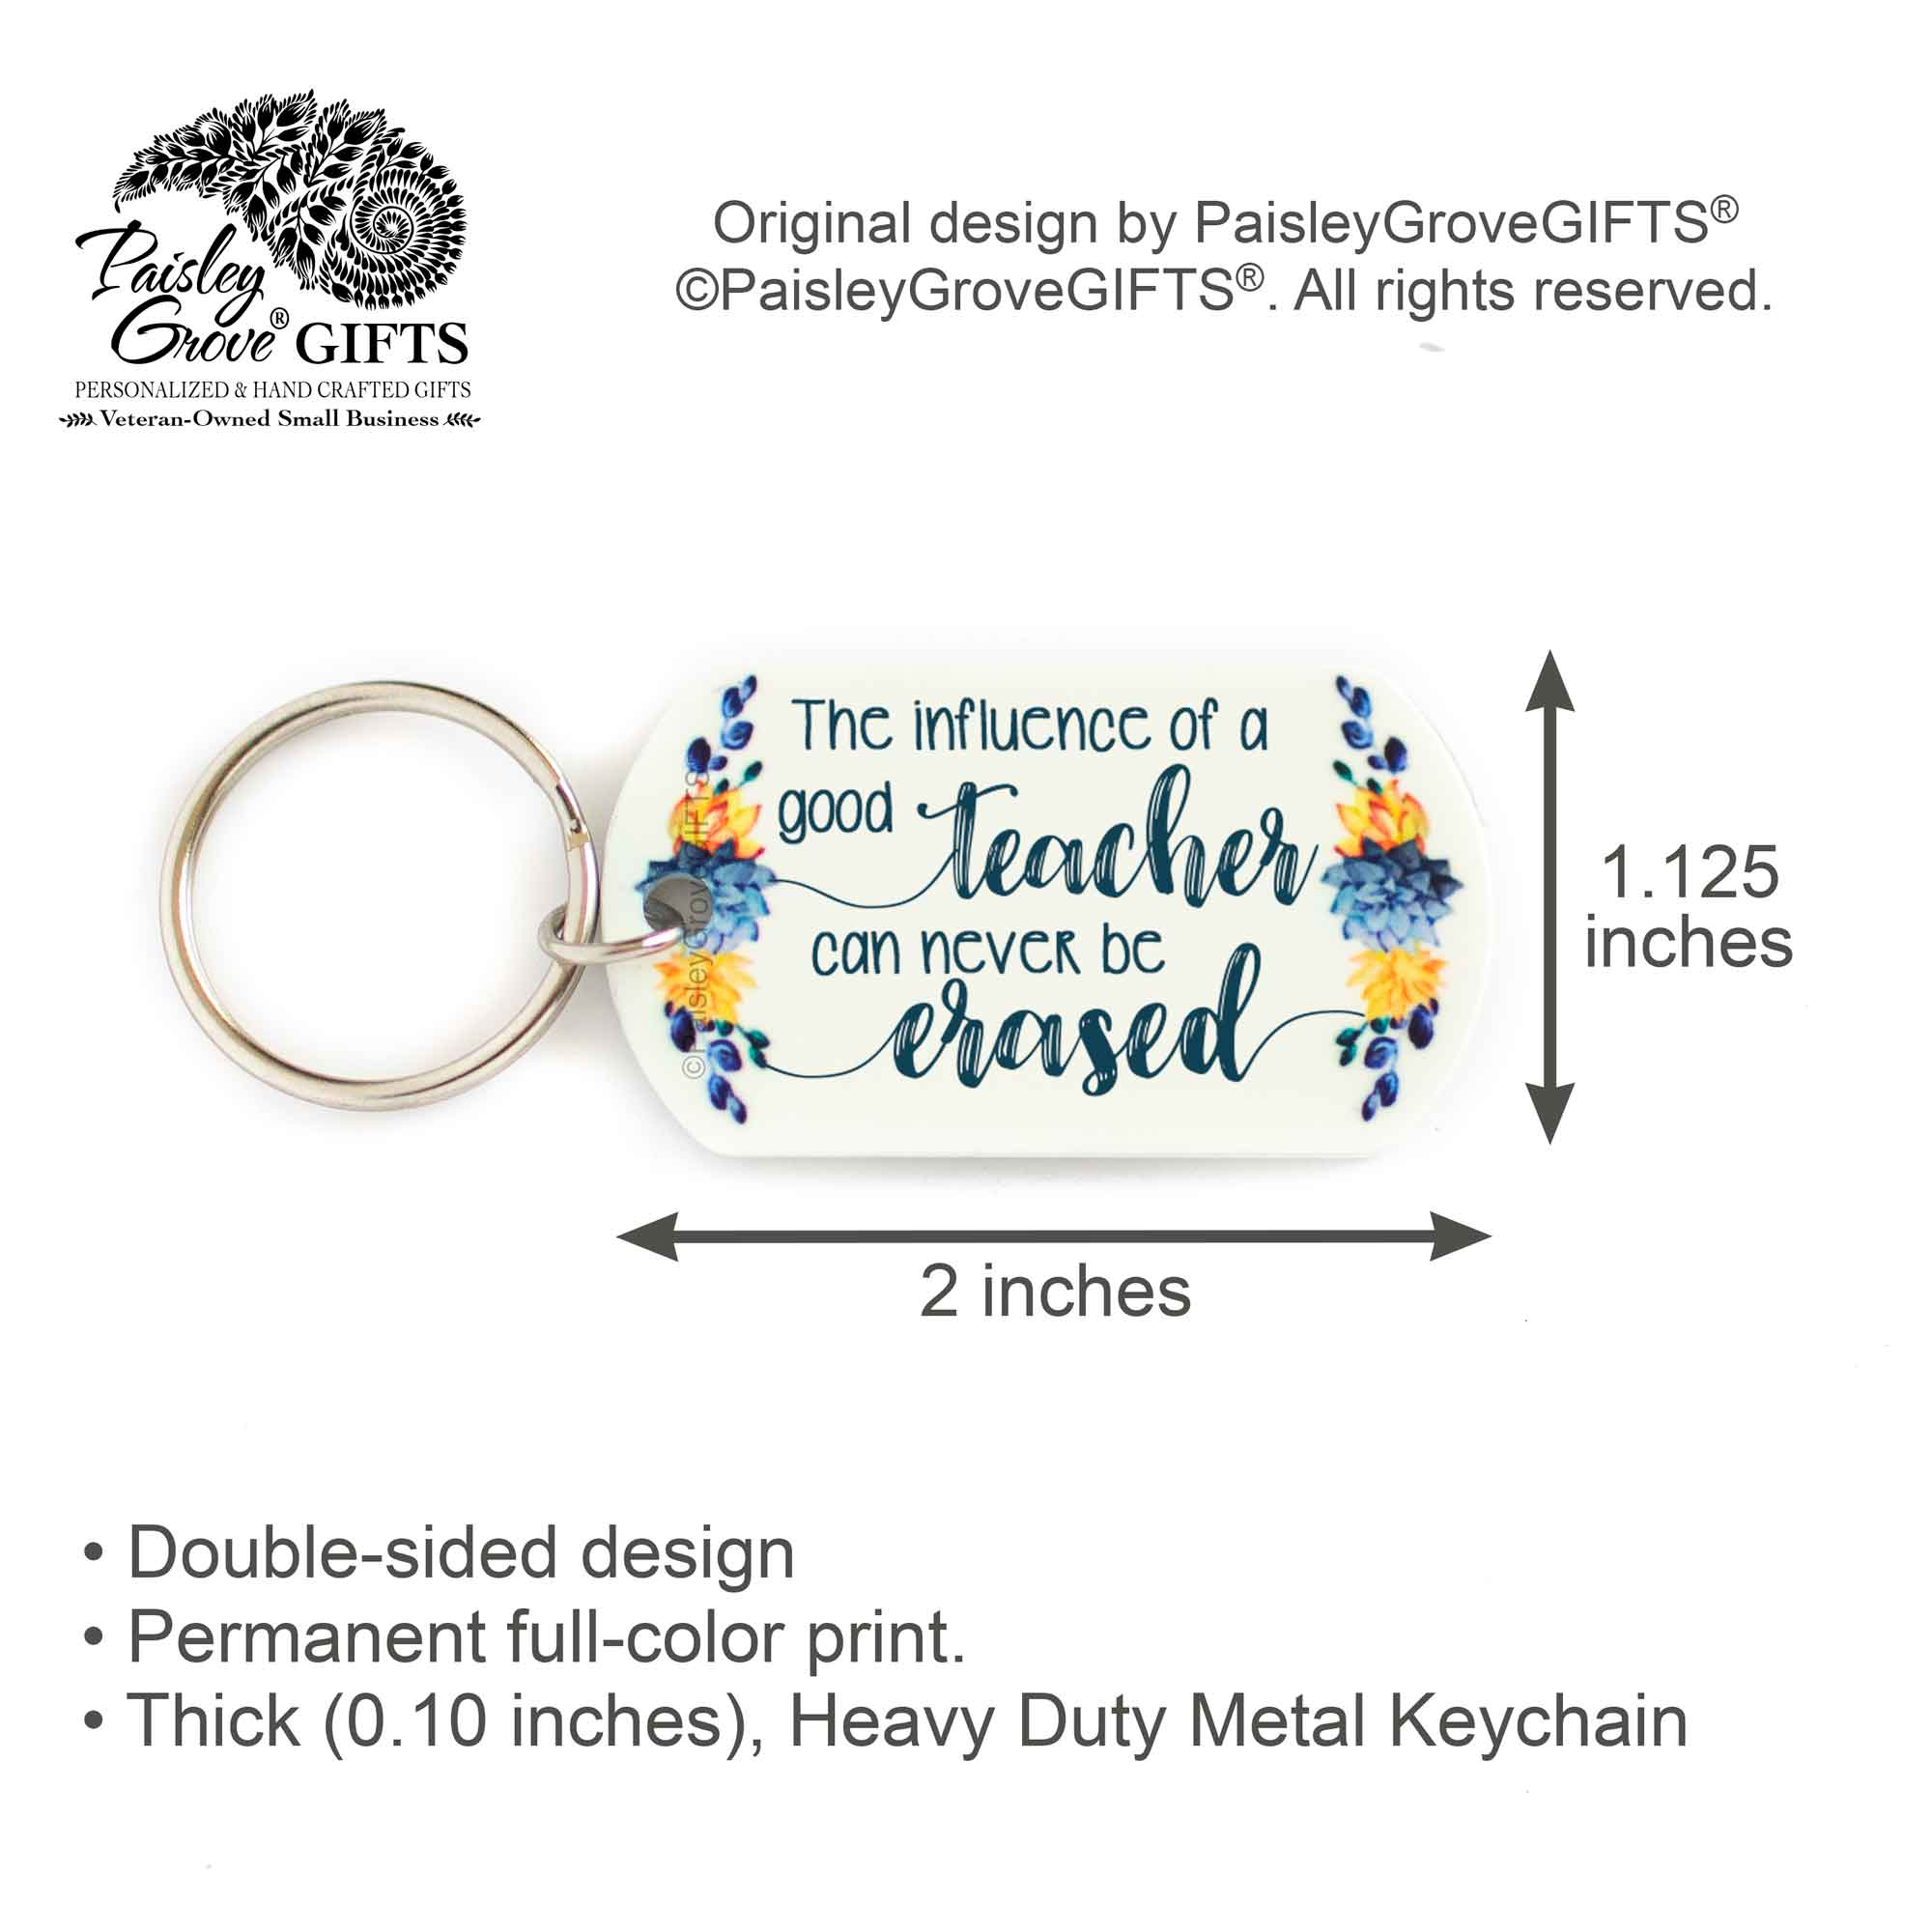 CopyrightPaisleyGroveGIFTS S005c Sentimental teacher key ring cactus gift for teachers measurement